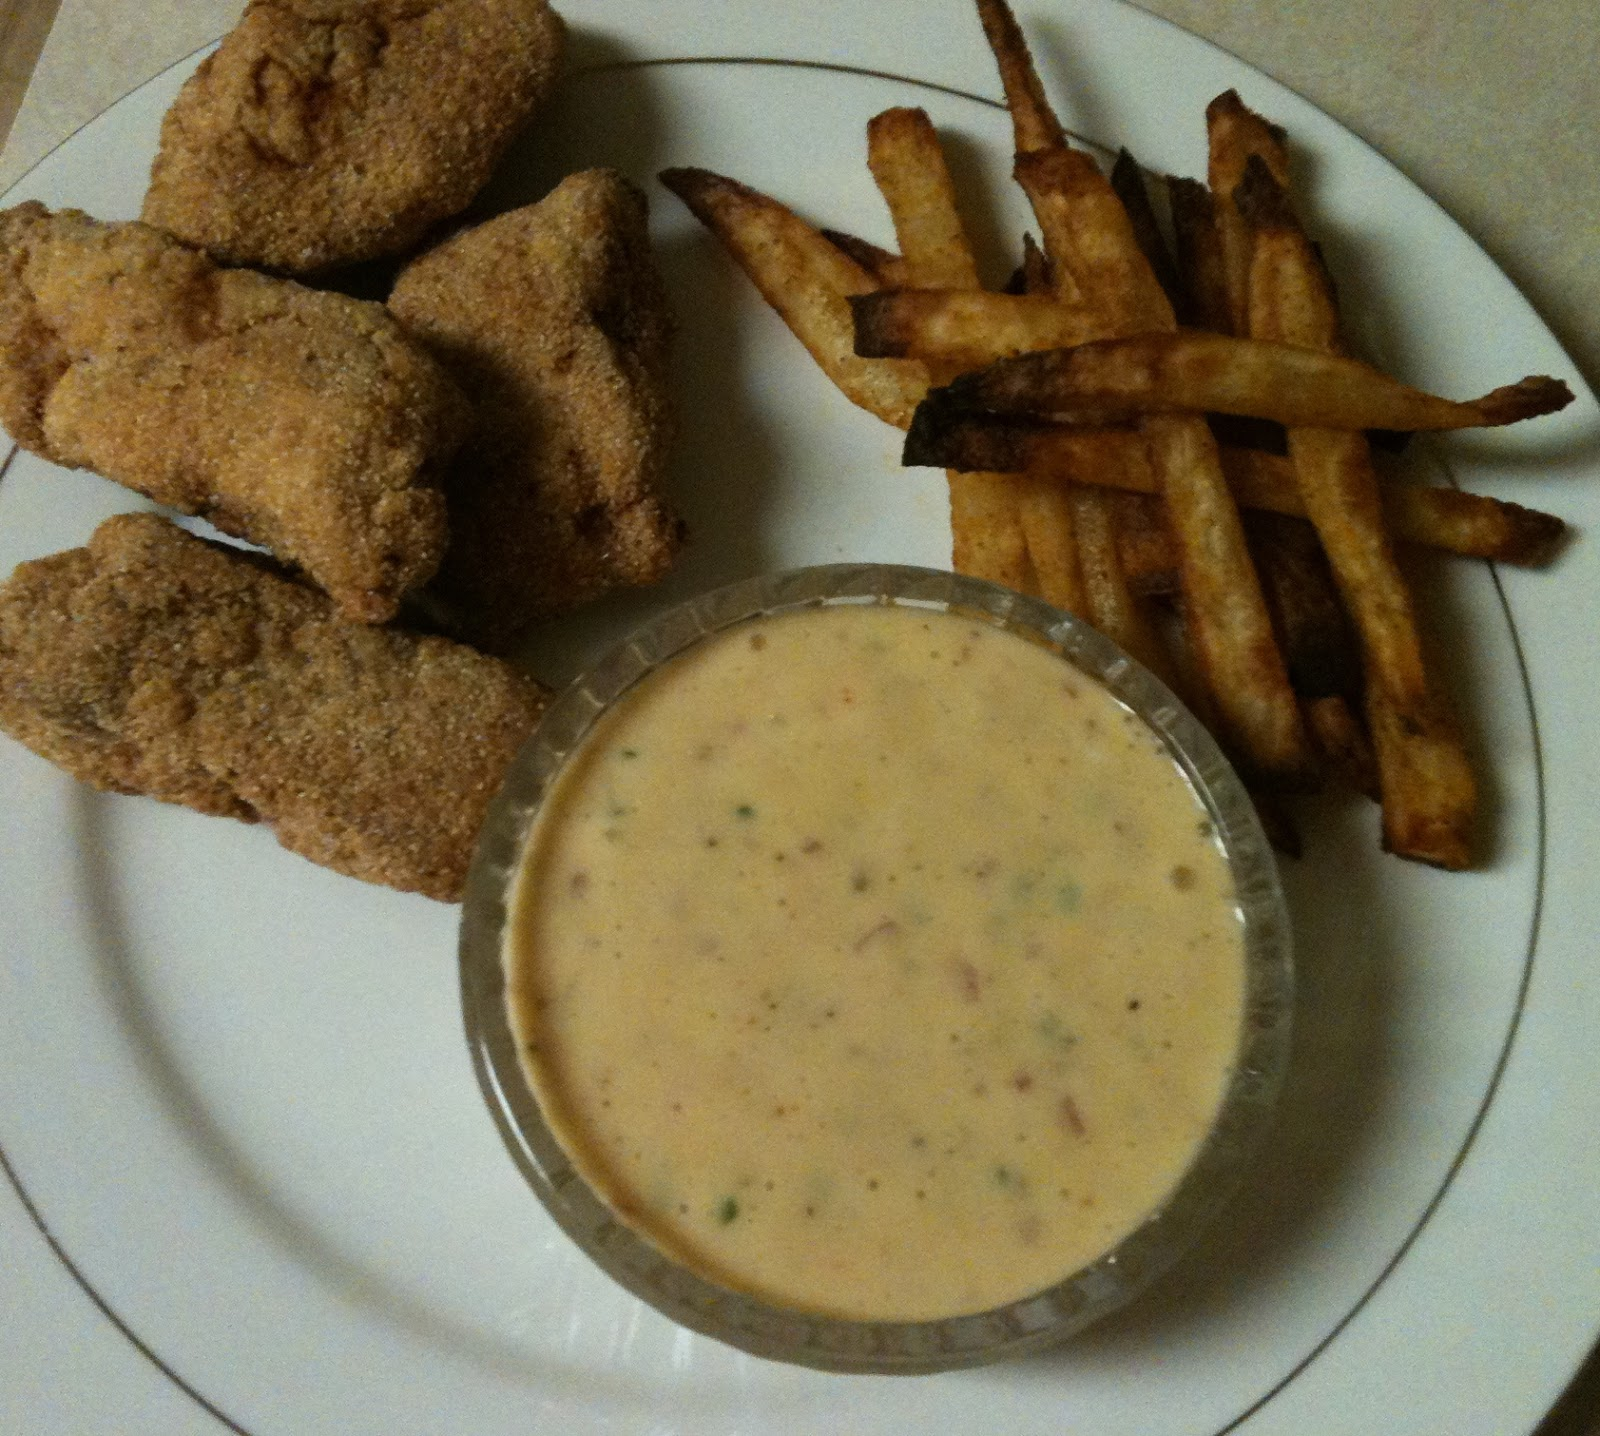 Luv2cook fried fish semolina crusted with tartar sauce for How to make tartar sauce for fish fillet